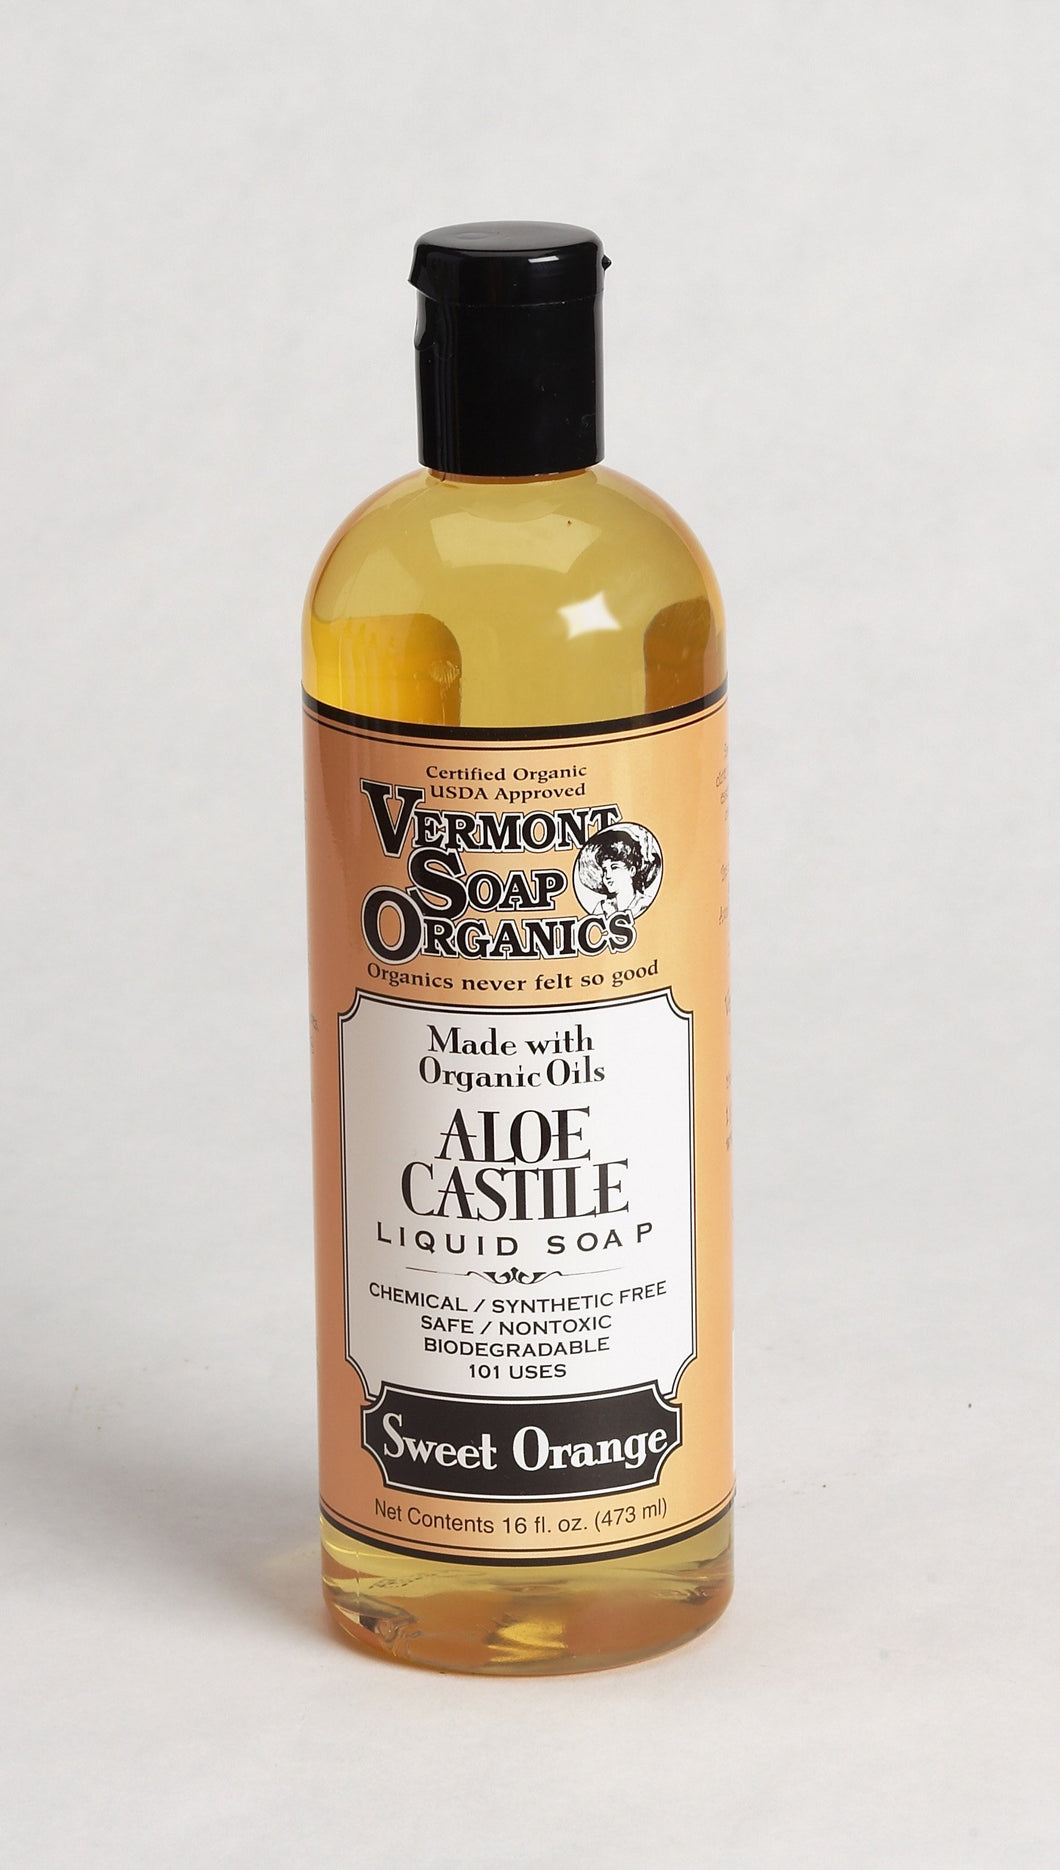 Vermont Soap Organics - Sweet Orange Liquid Aloe Castile Soap 16oz - myorganicals